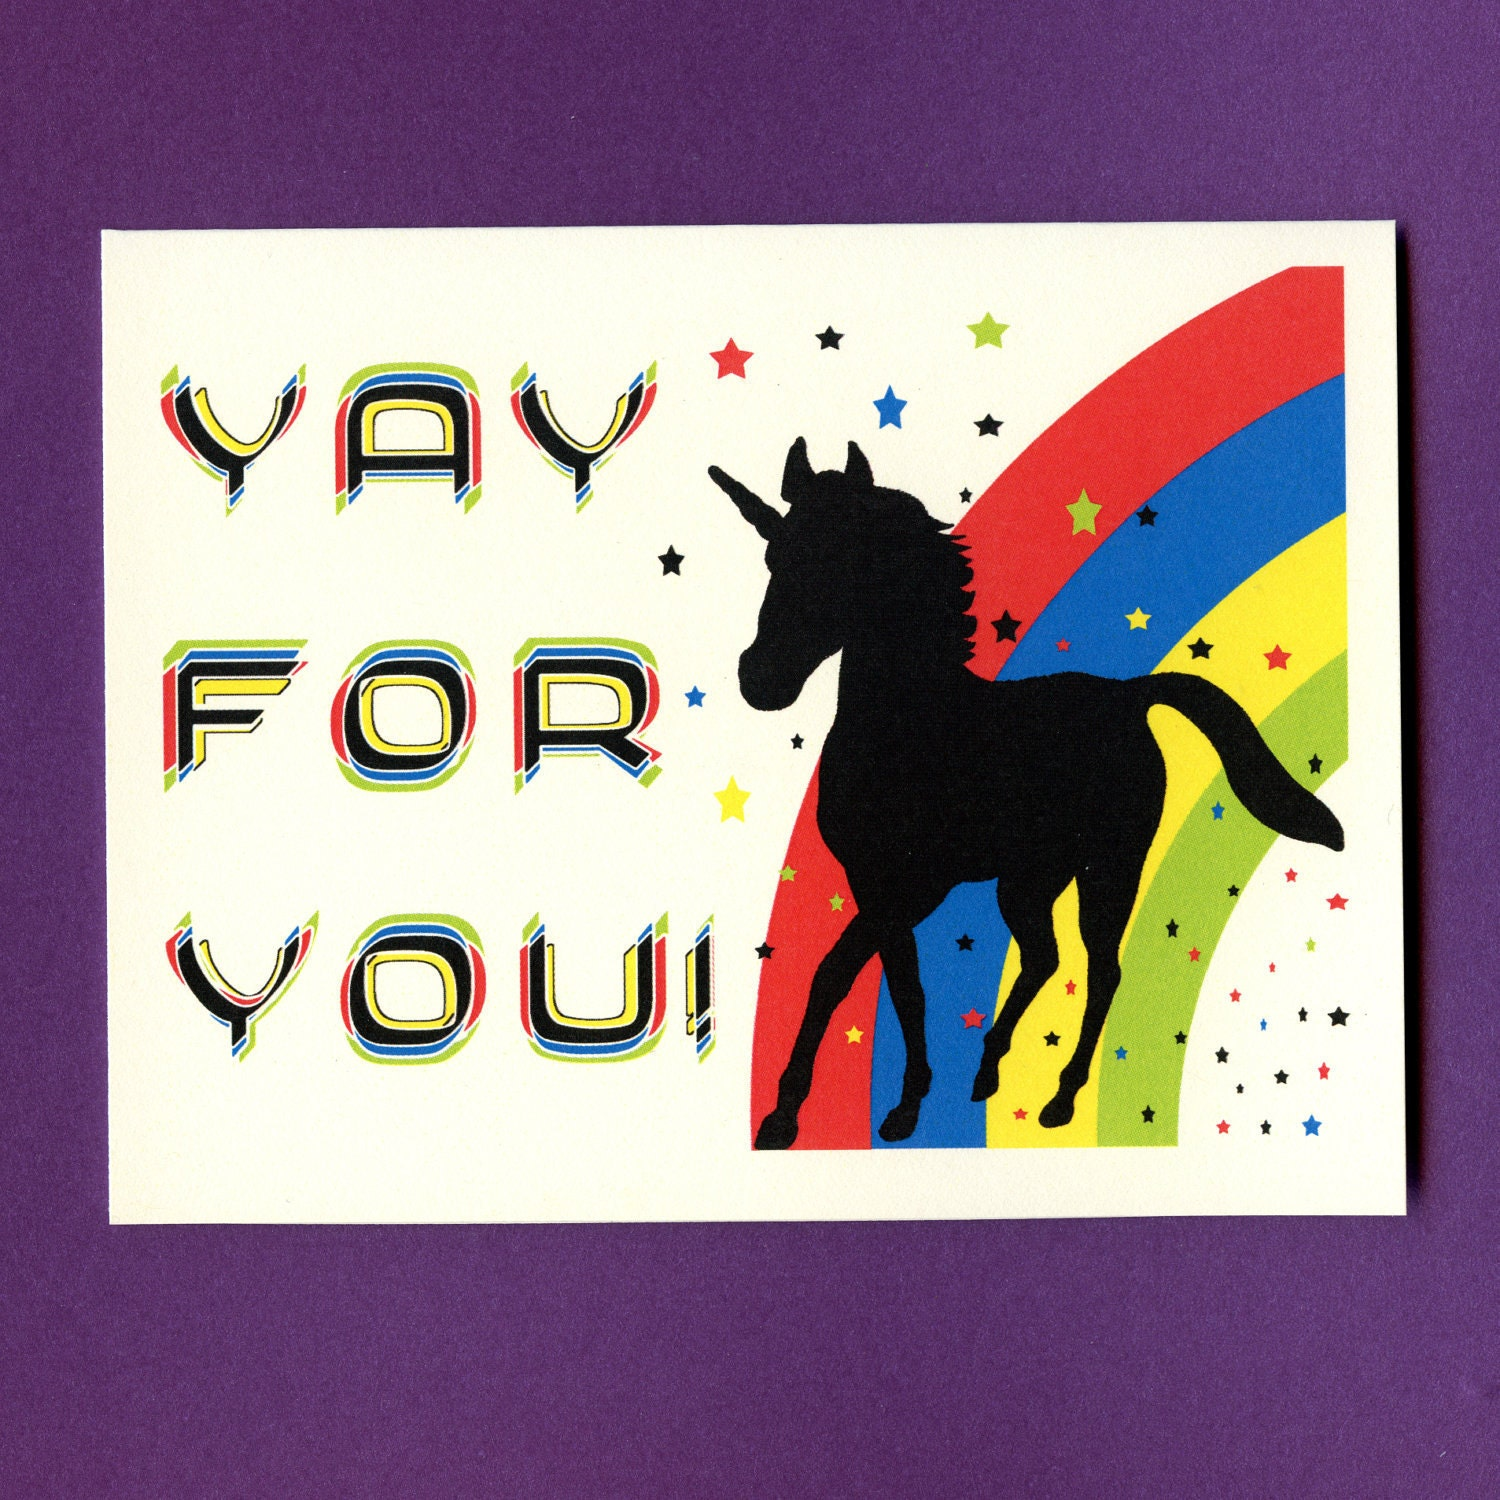 Funny Congratulations Card YAY FOR YOUNICORN by seasandpeas: https://www.etsy.com/listing/104925892/funny-congratulations-card...